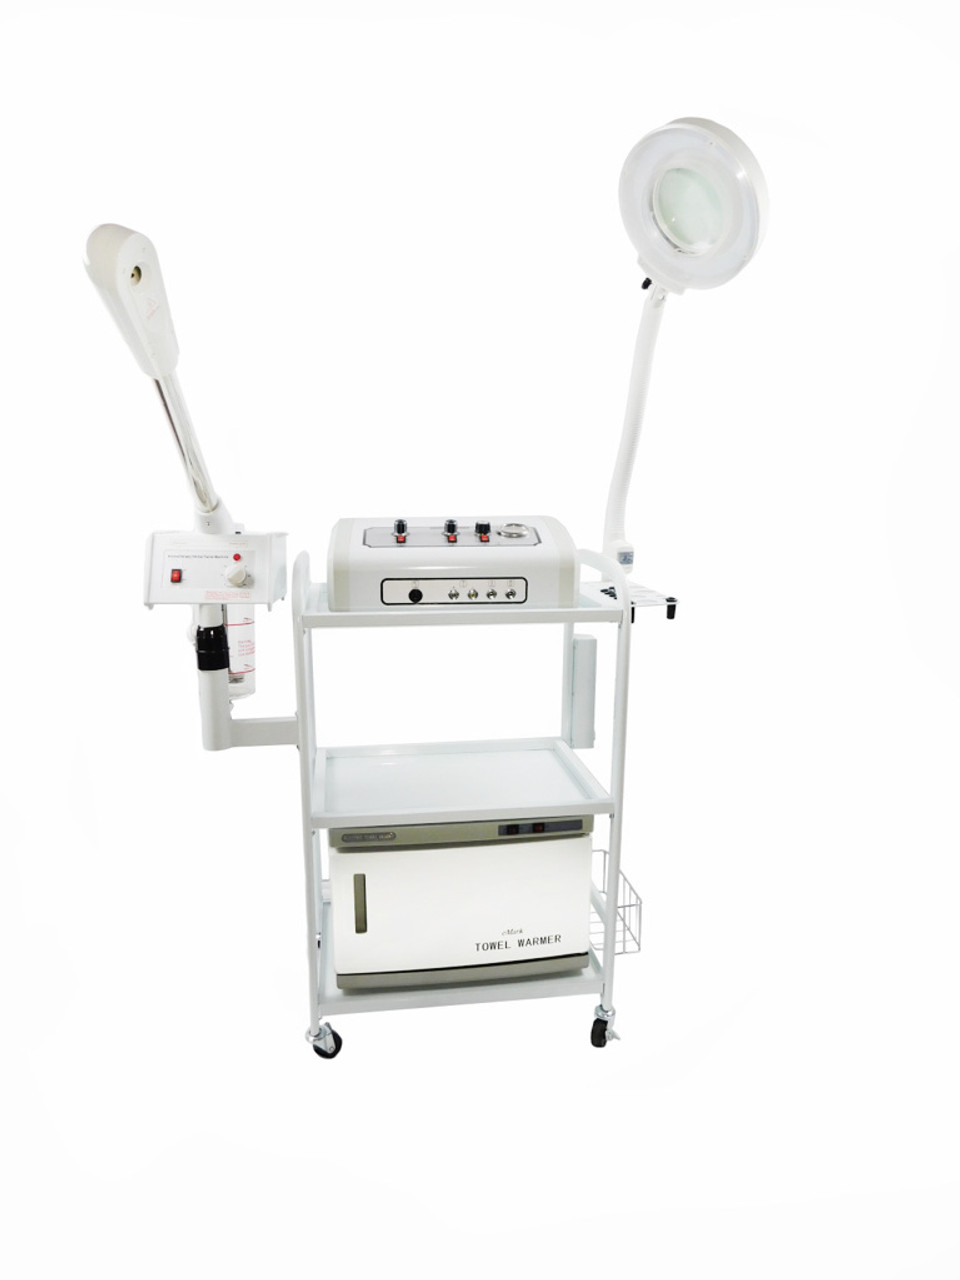 Aromatherapy Glass Jar Steamer 9 in 1 Skincare All in 1 Microdermabrasion Facial Machine TLC-3025CFM